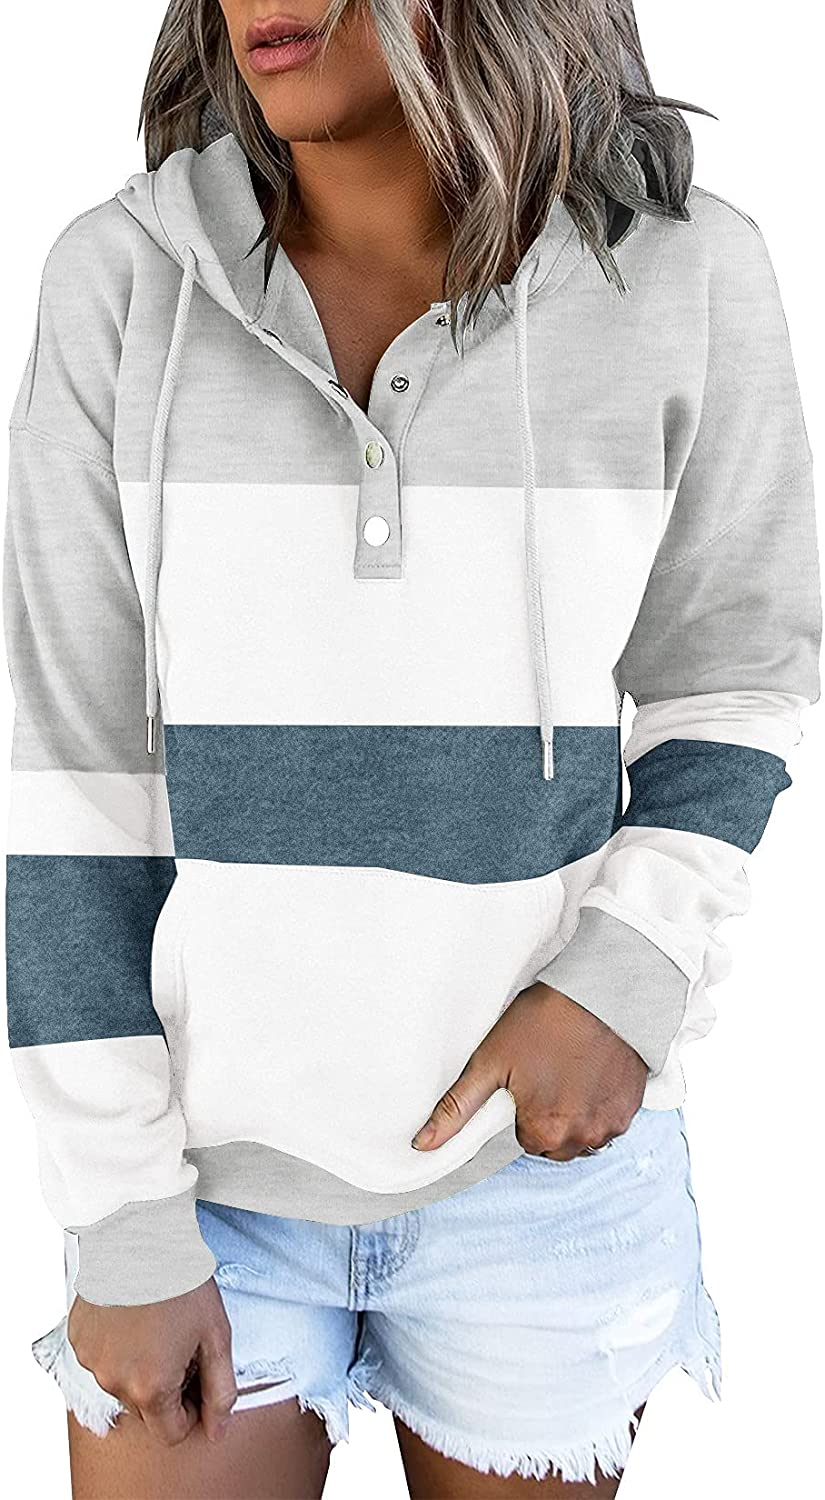 ETCYY Women's Color Block Hoodies Tops Long Sleeve Casual Drawstring Button Down Pullover Sweatshirt with Pocket